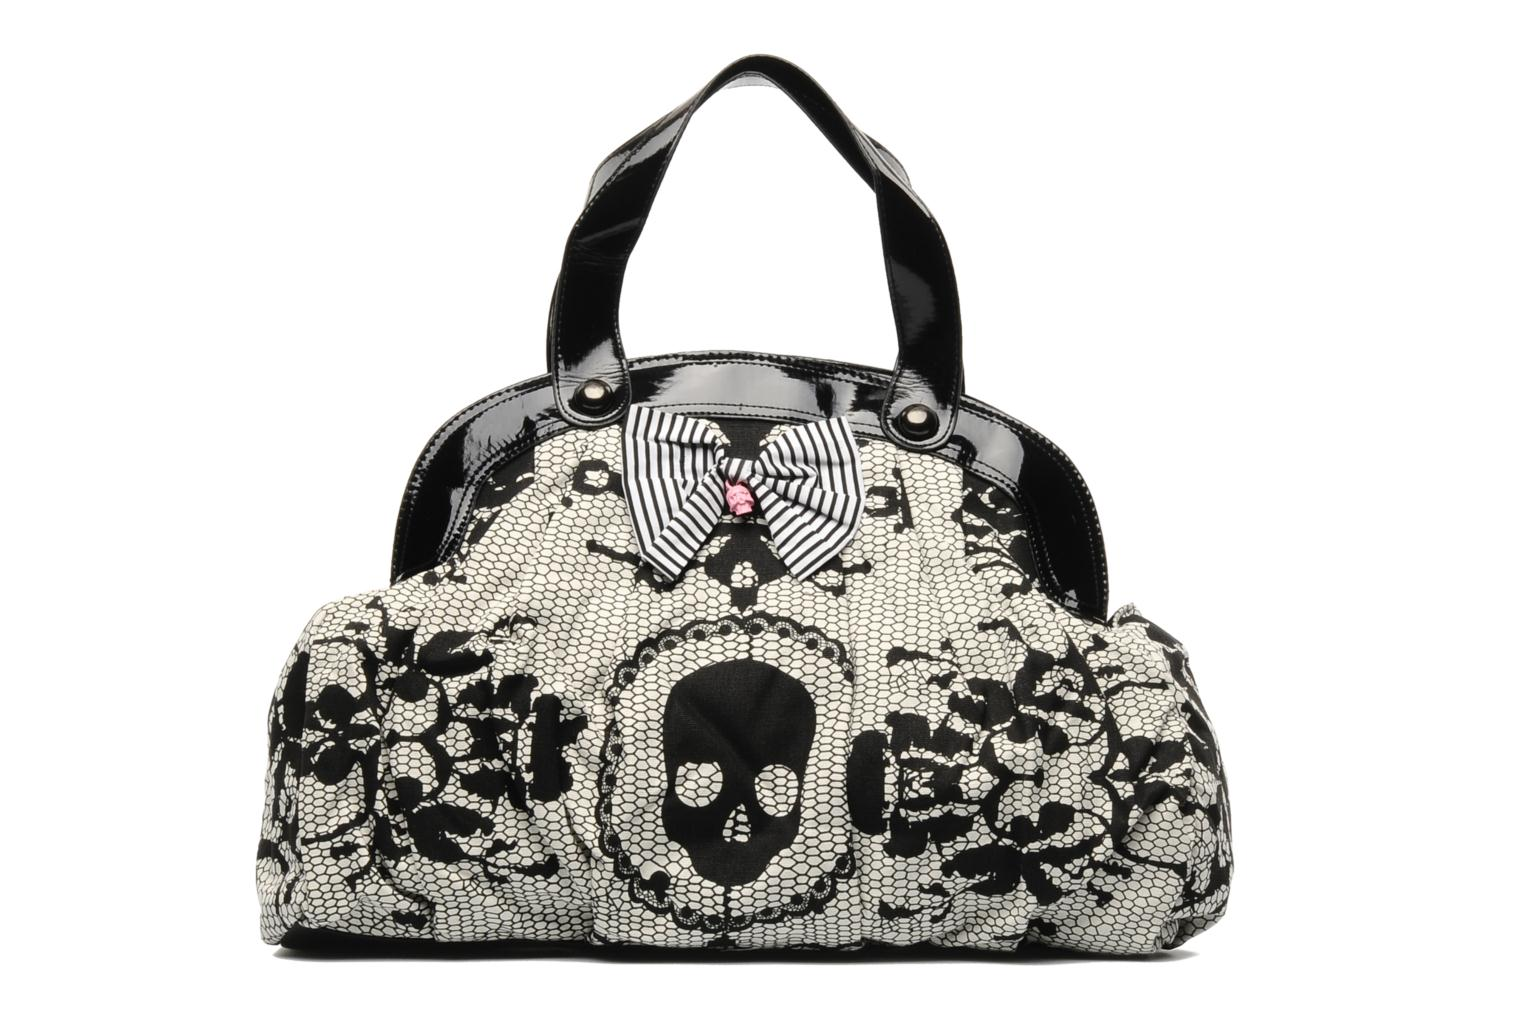 Handbags Iron Fist Lacey Days Black Detailed View Pair